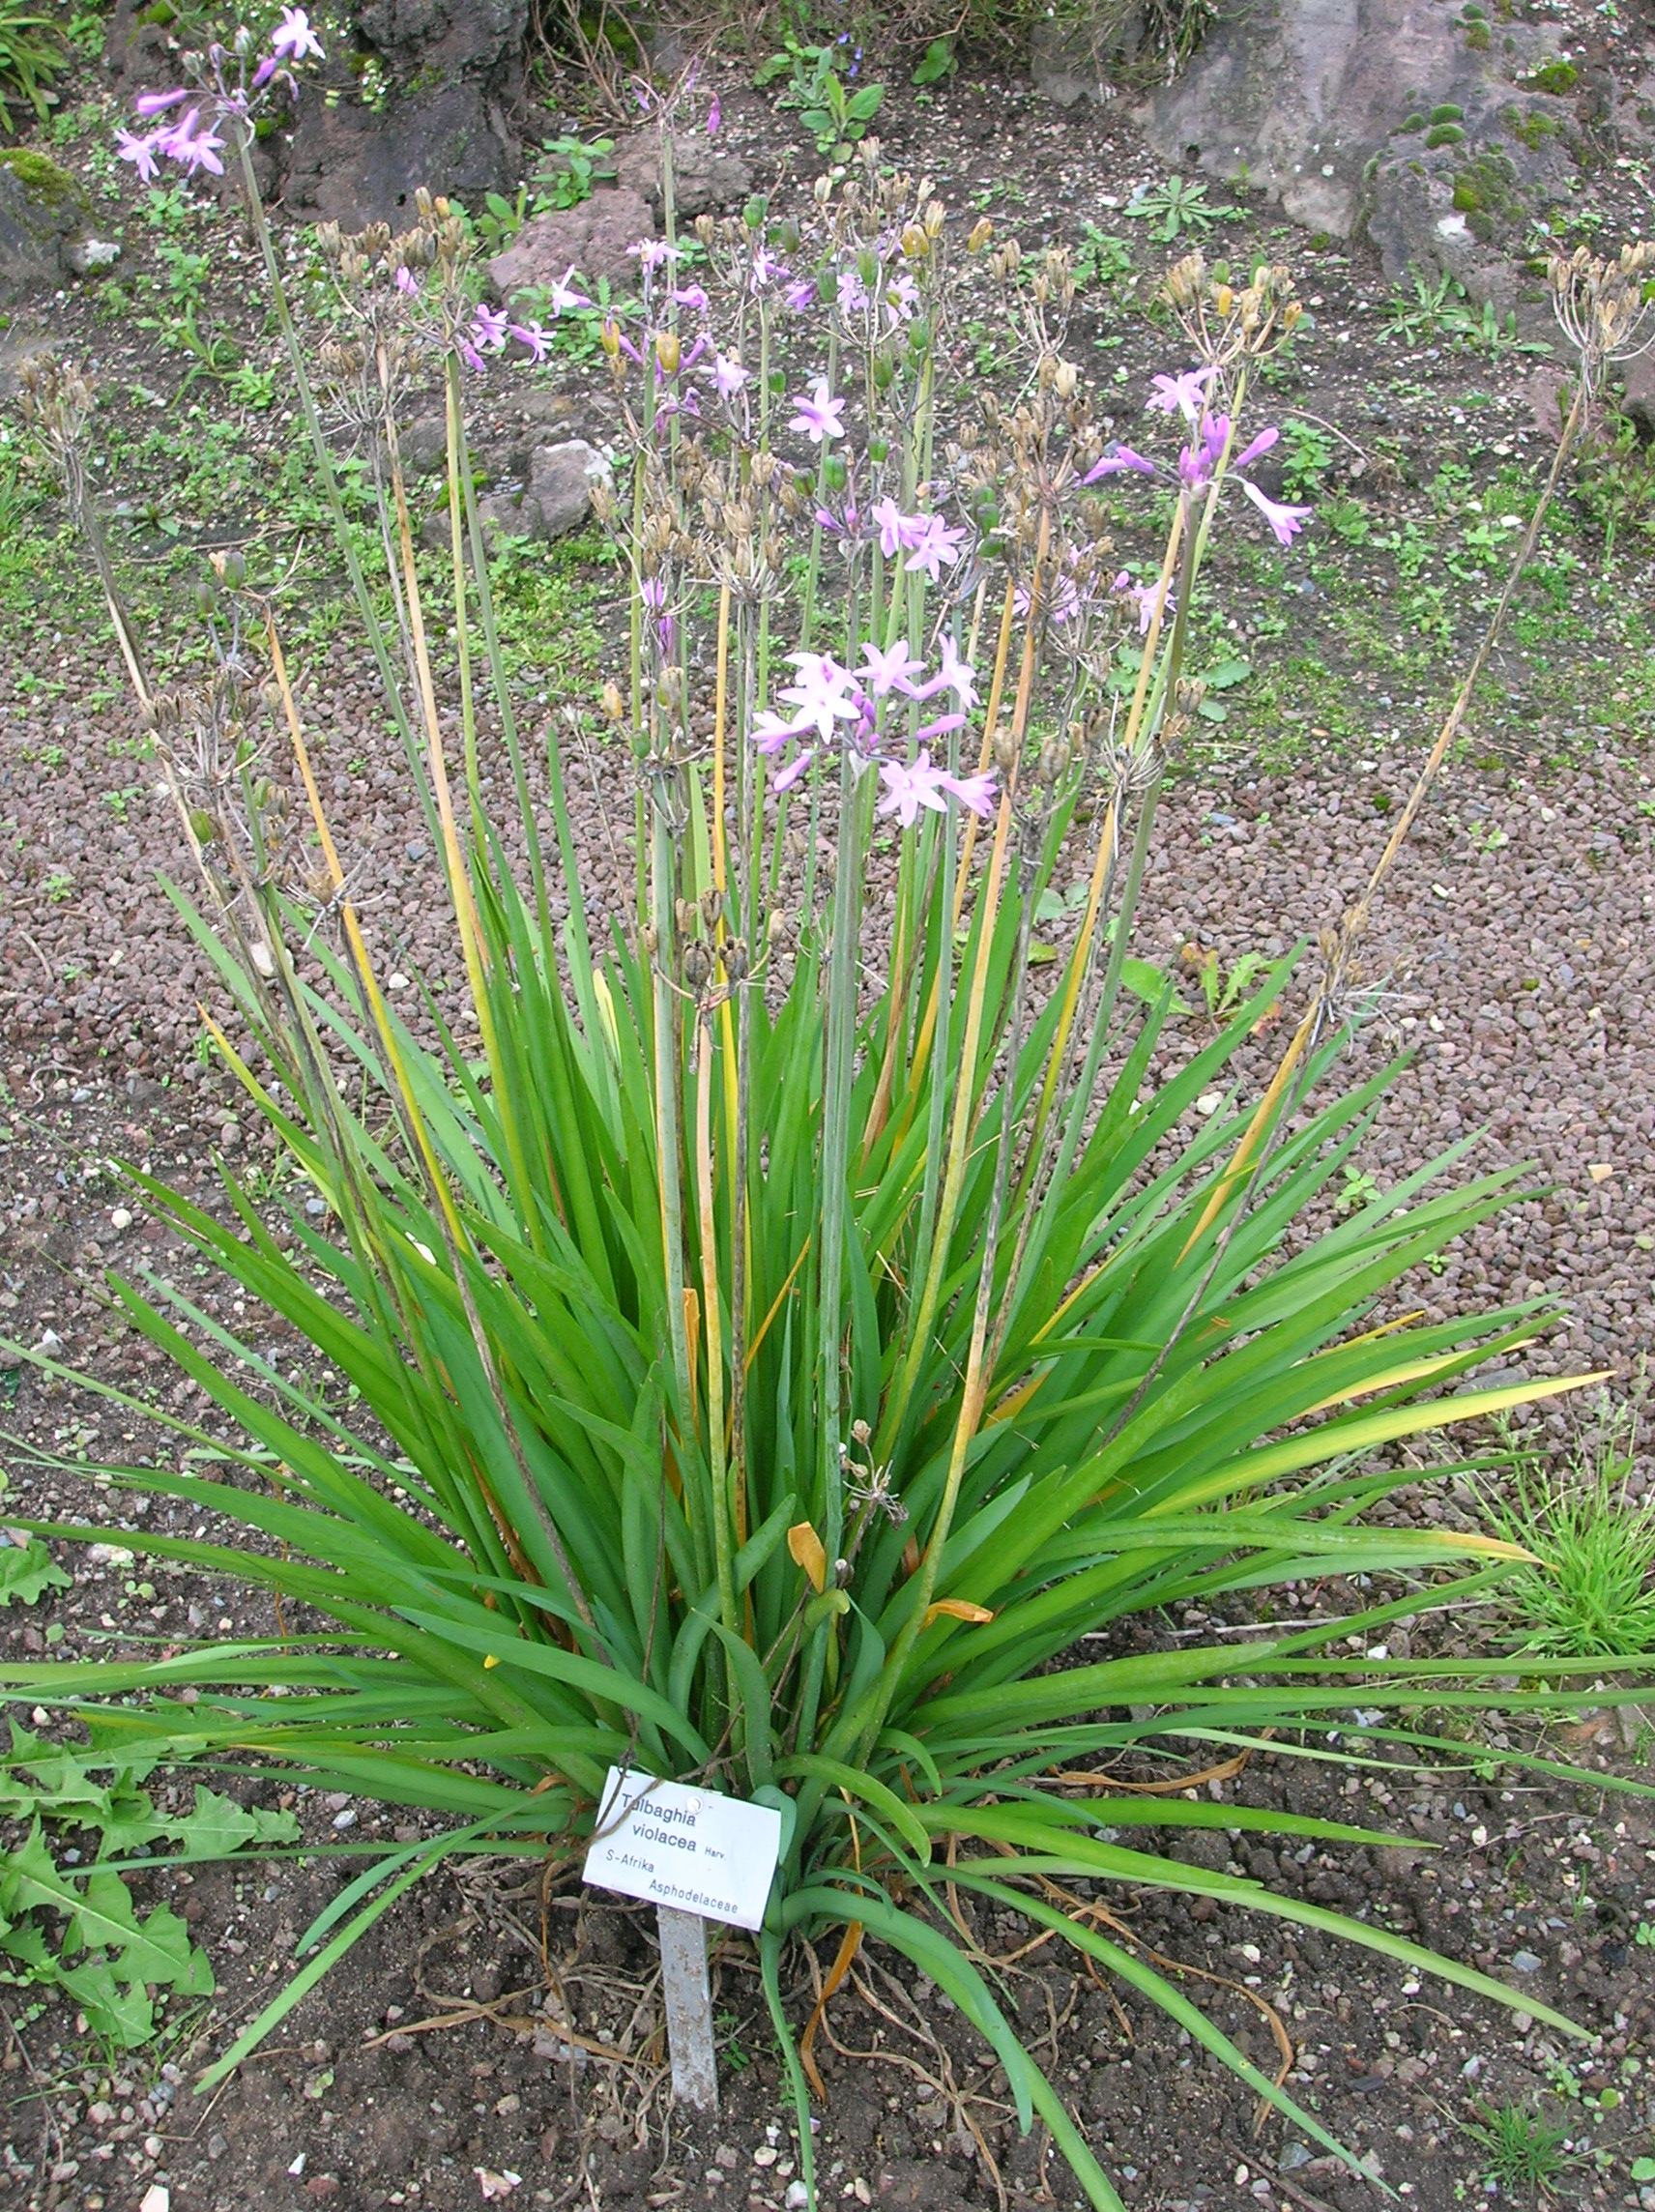 Tulbaghia violacea images useful tropical plants for Planting a garden